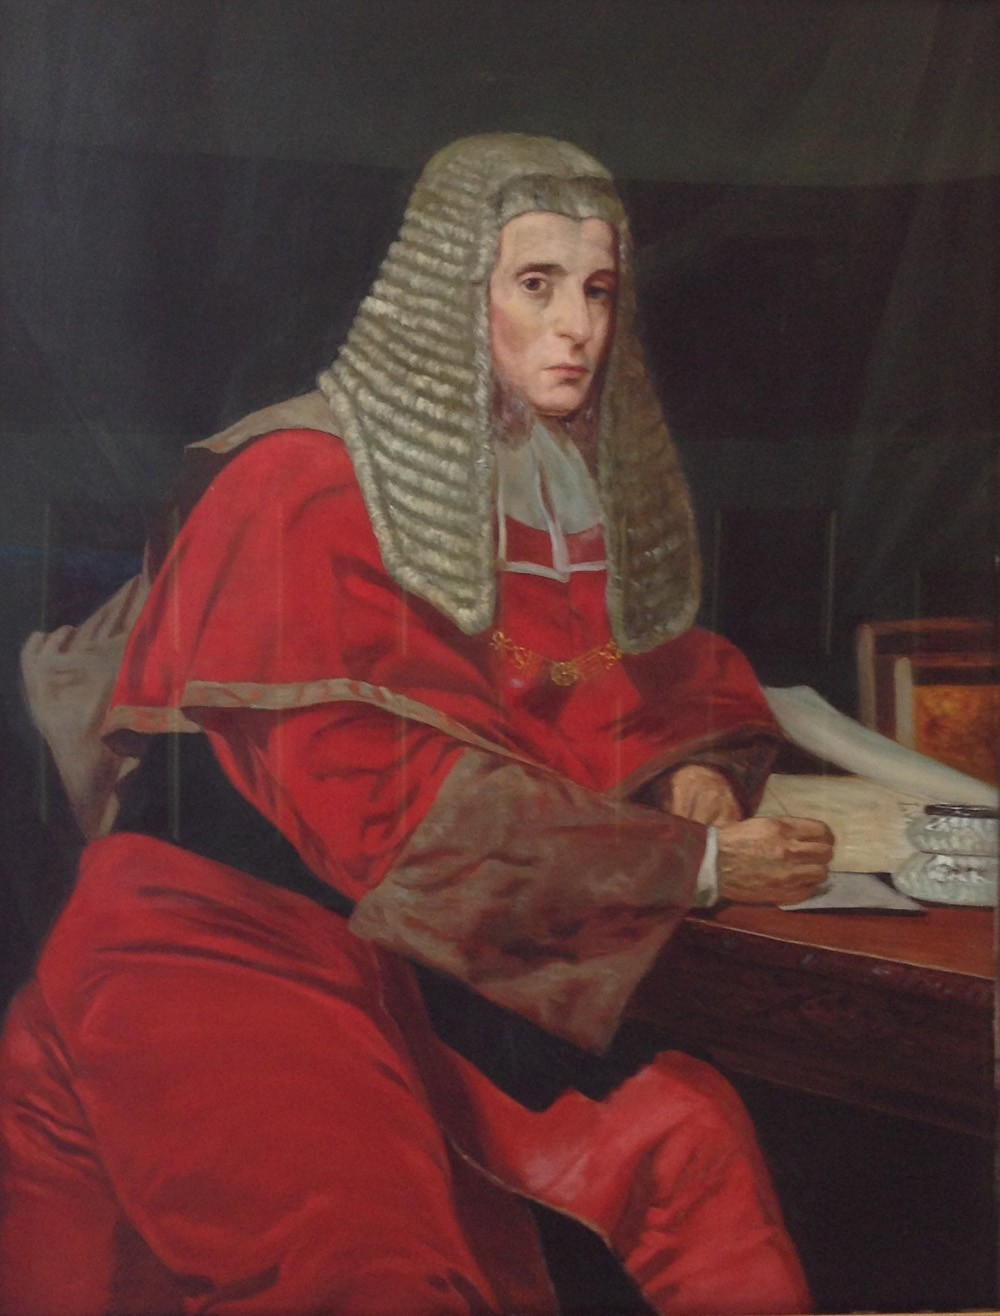 Portrait of the Honourable Sir James Cockle wearing the wig and robes of his office